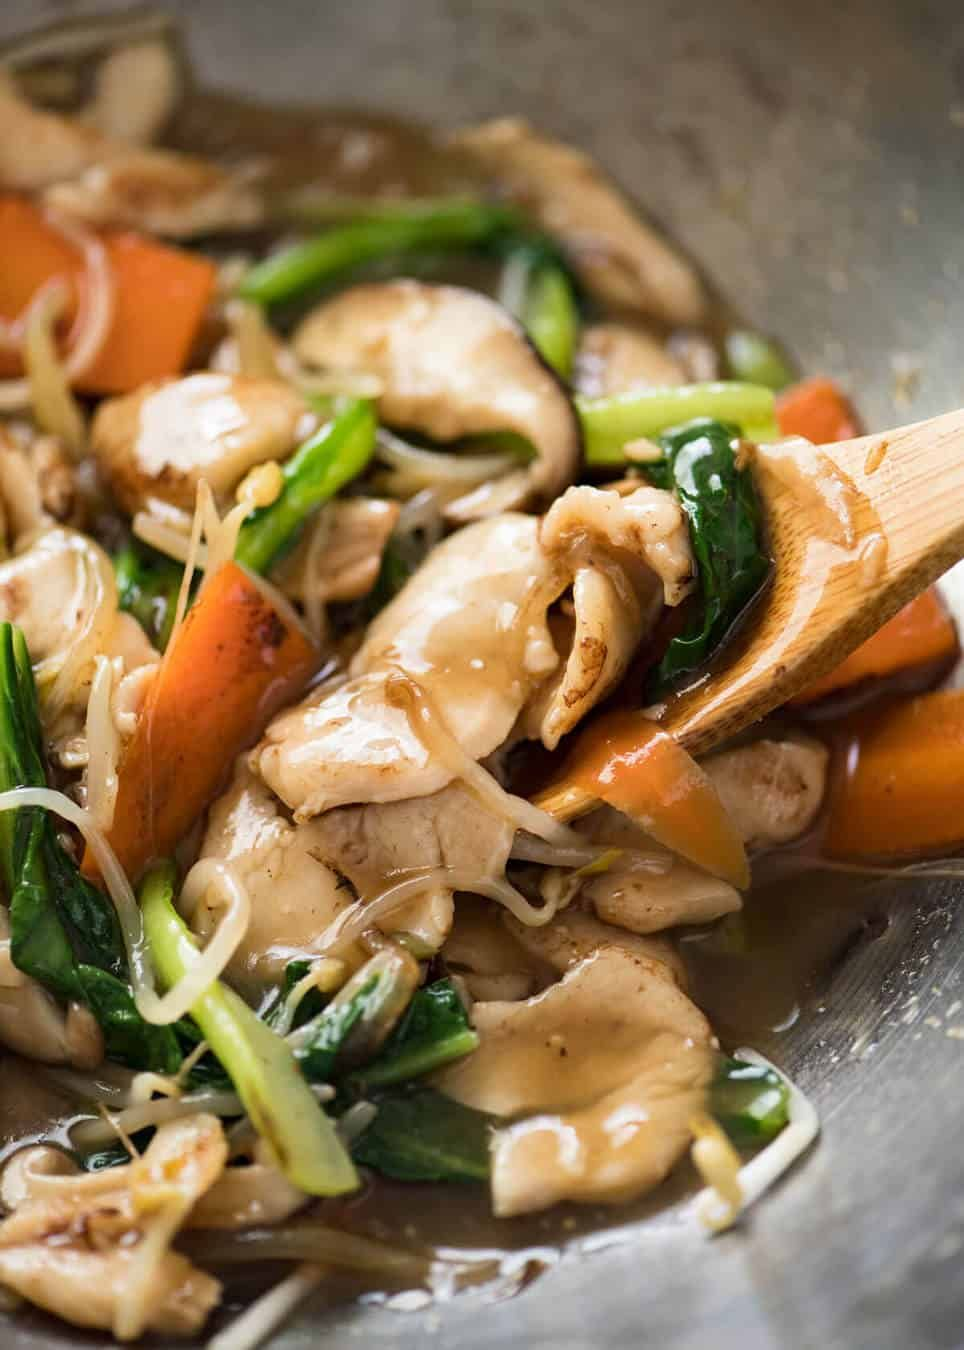 Chop Suey Chicken Stir Fry Recipe Chinese Cooking Chinese Chicken Stir Fry Recipetin Eats